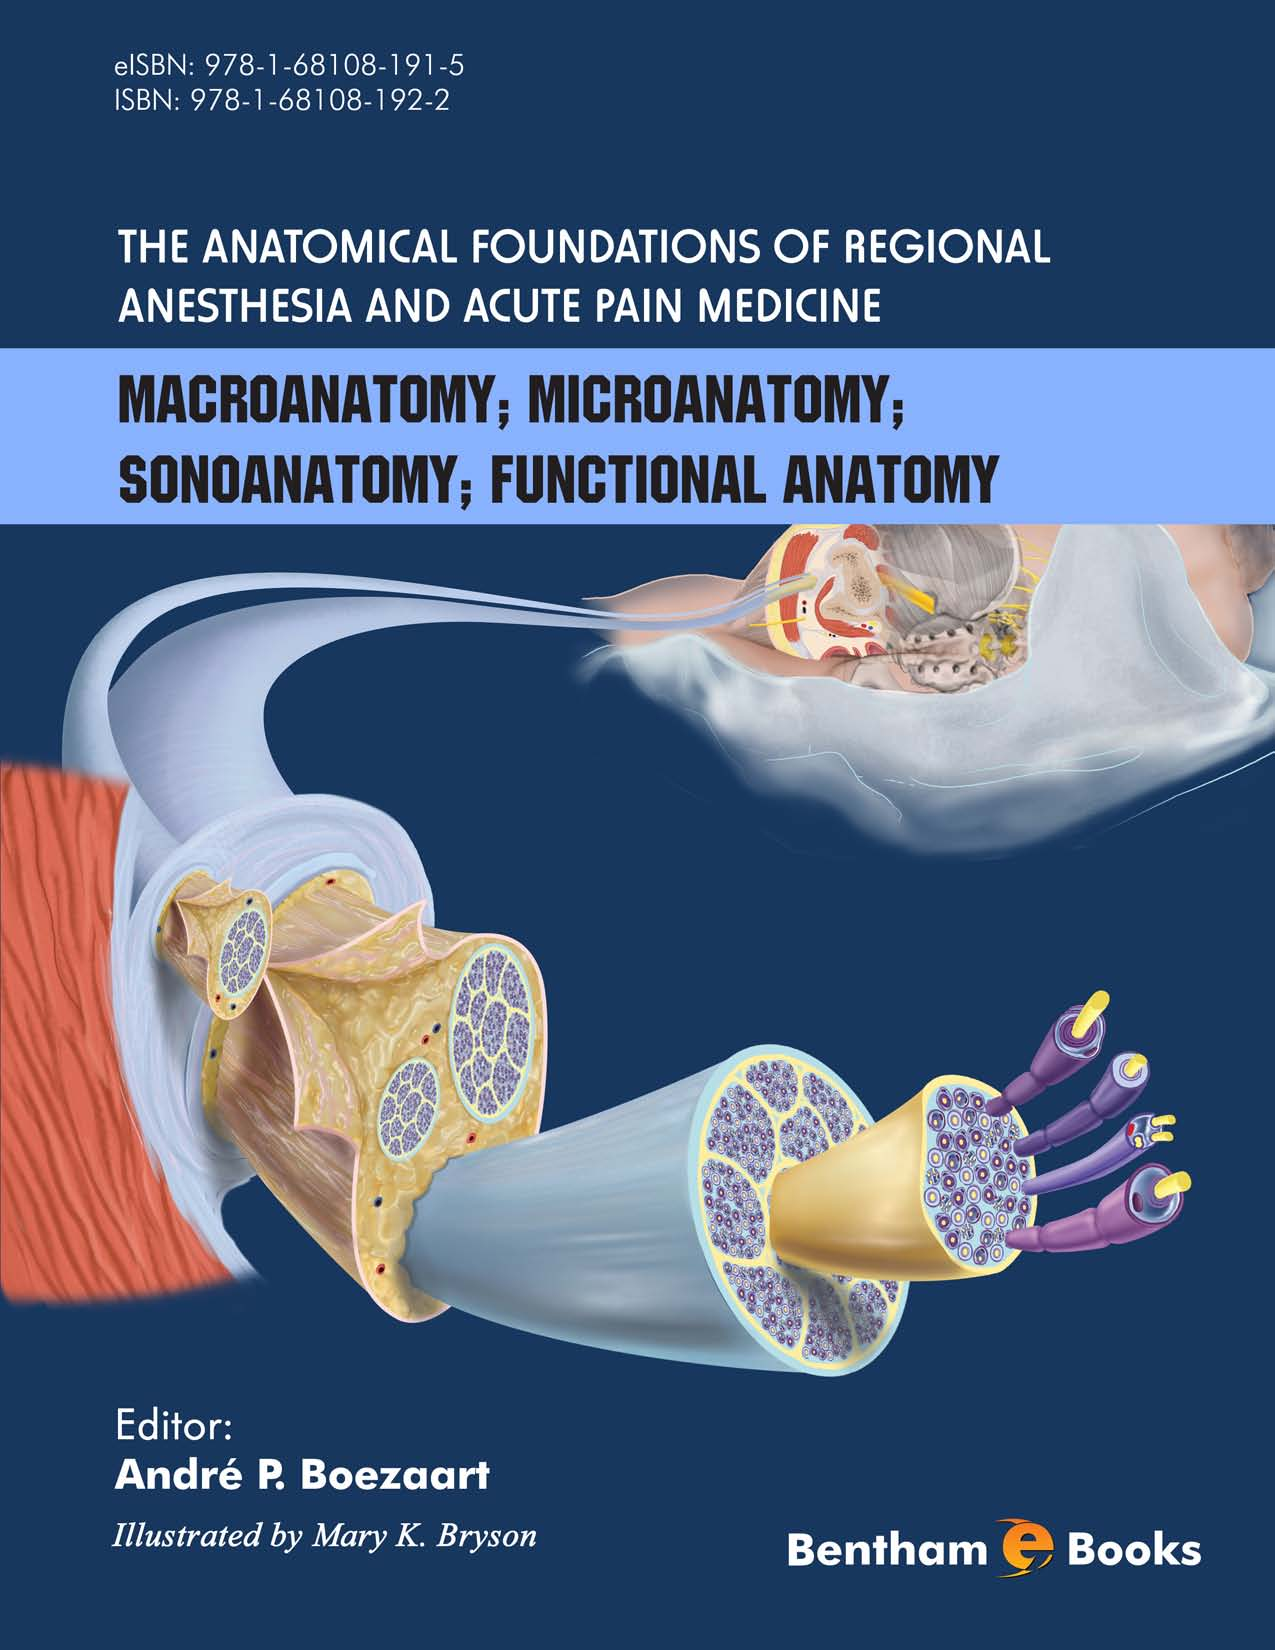 The Anatomical Foundations of Regional Anesthesia and Acute Pain Medicine